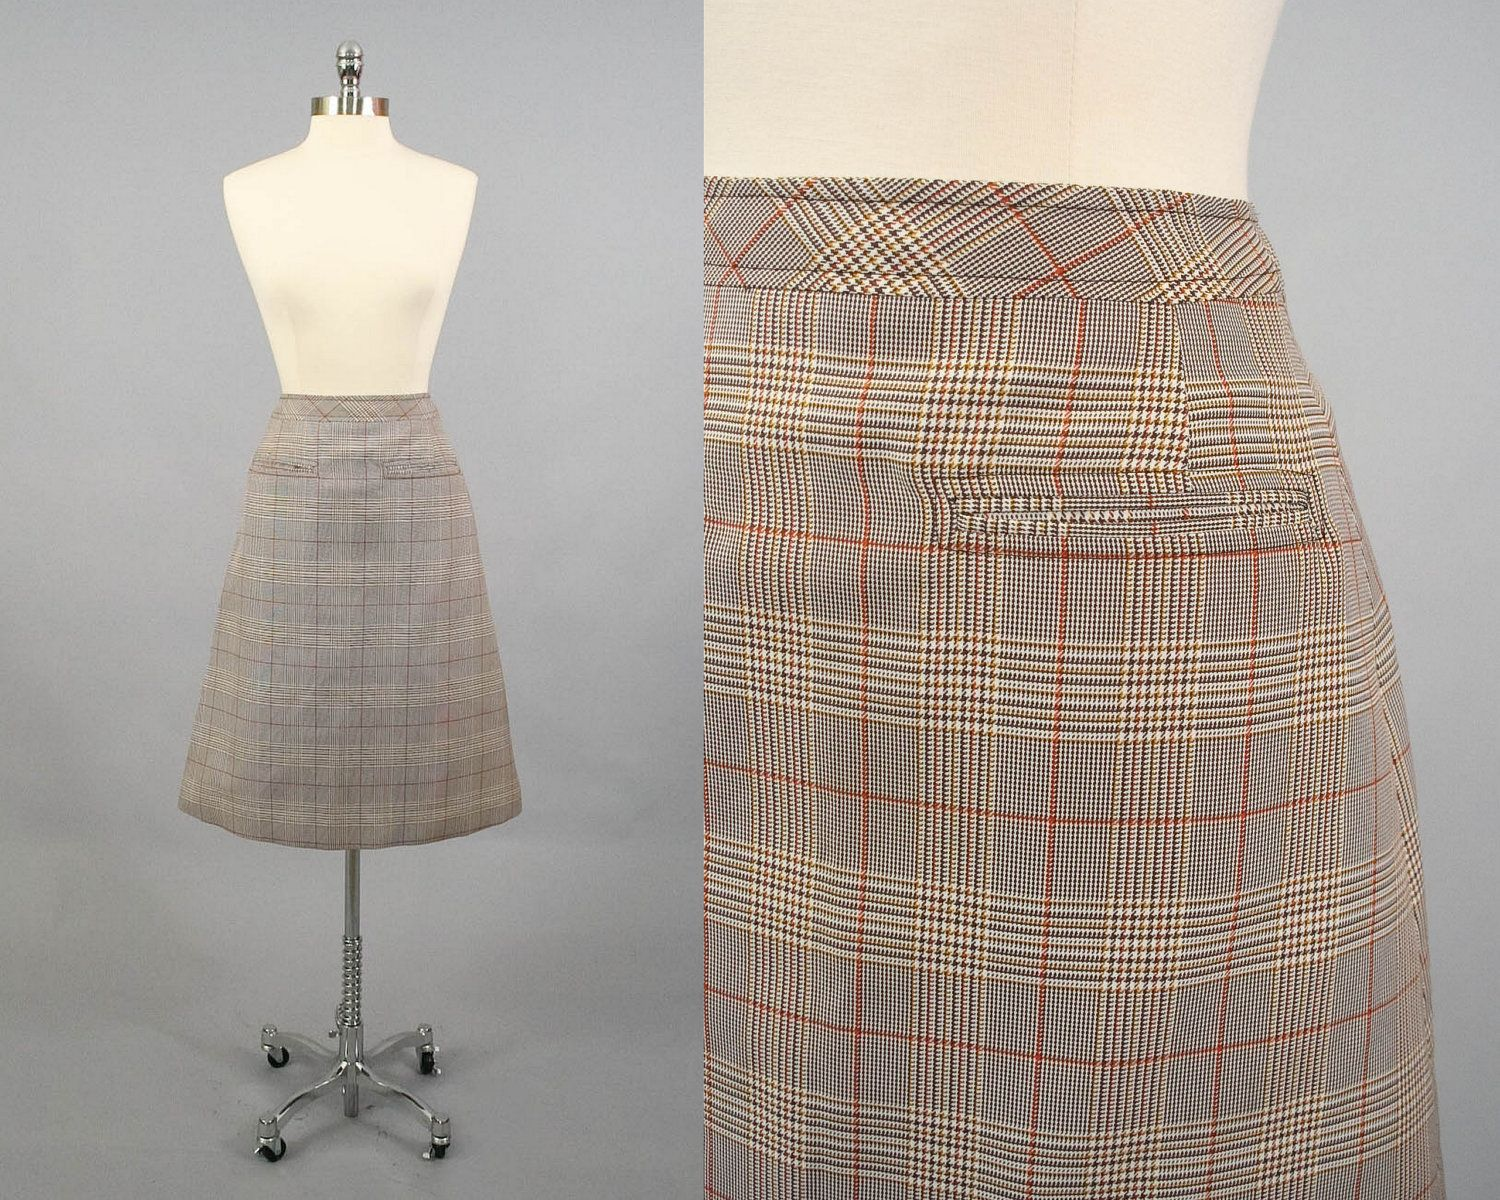 Vintage 60s 70s Houndstooth Plaid A Line High Waist Midi Skirt  (M). via Etsy.